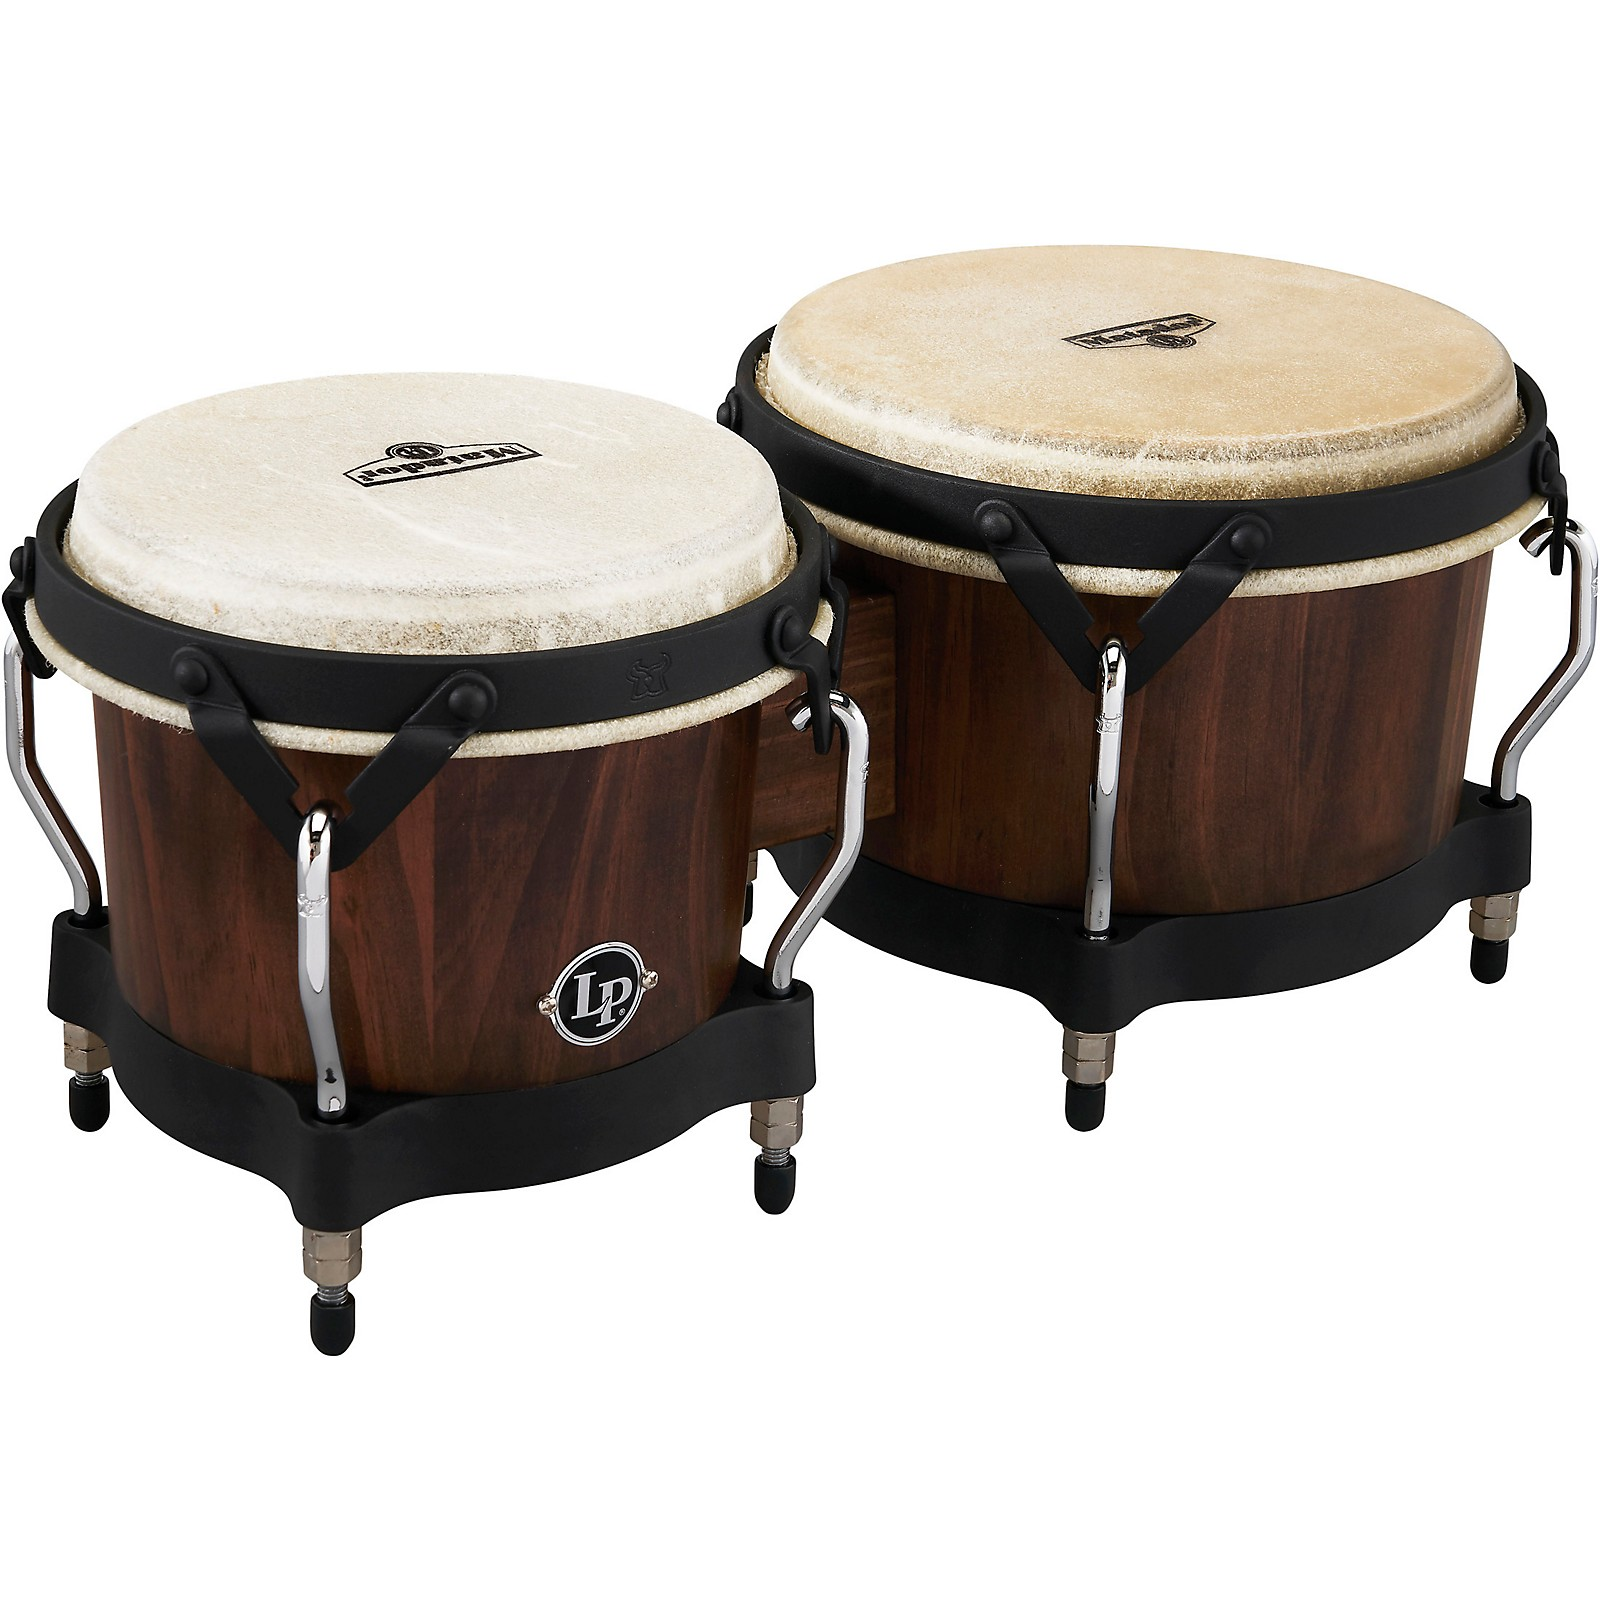 LP Matador Pine Whiskey Barrel Bongos, with Black Hardware